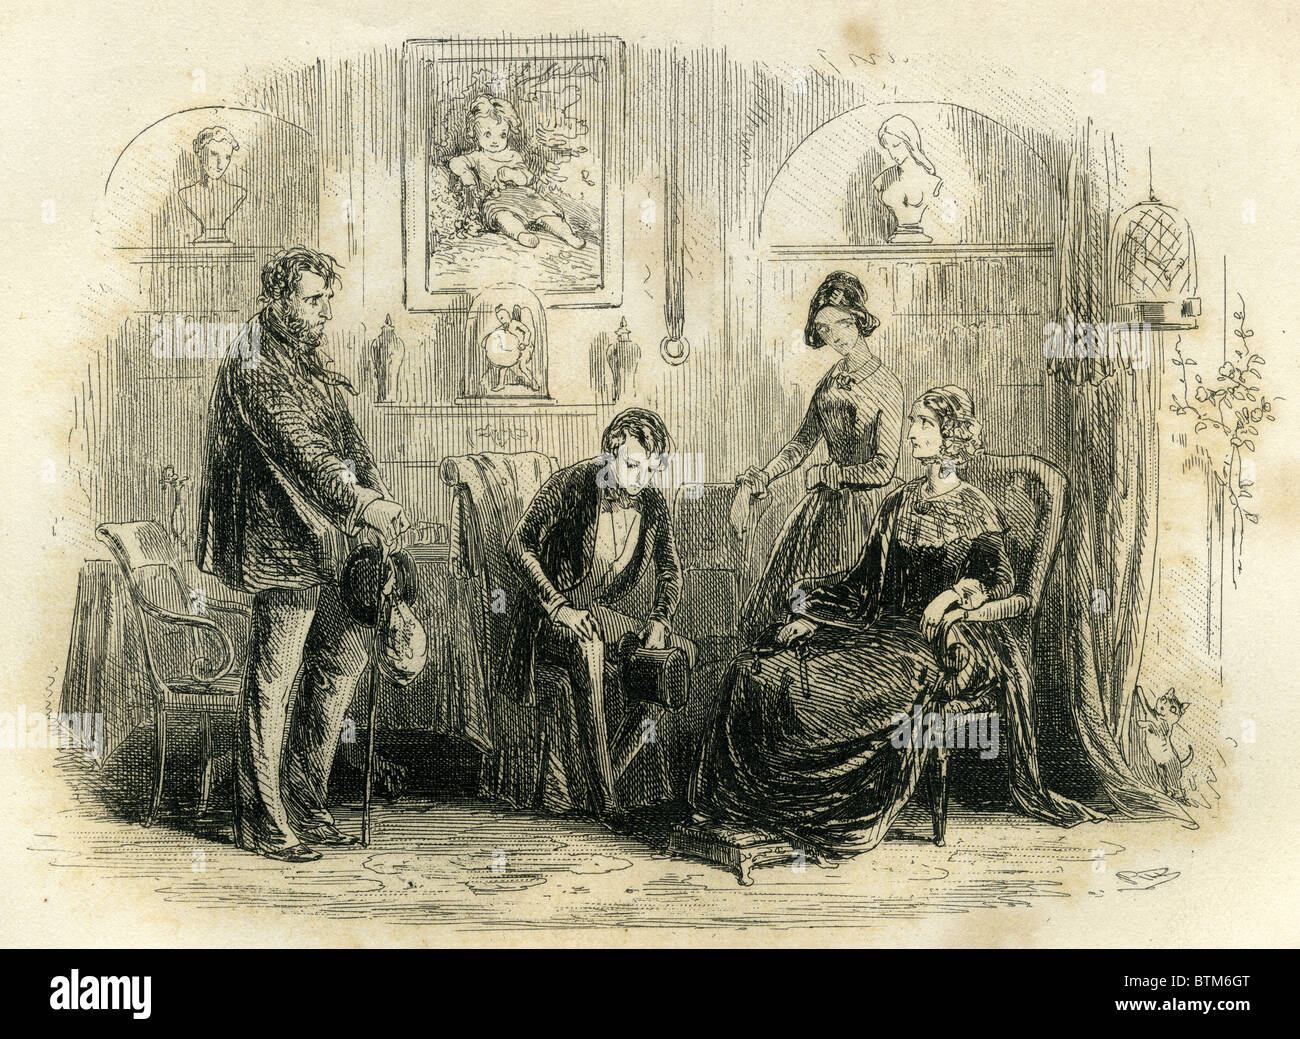 david copperfield novel characters charles dickens david  character peggotty stock photos character peggotty stock images david copperfield mr peggotty and mrs steerforth stock